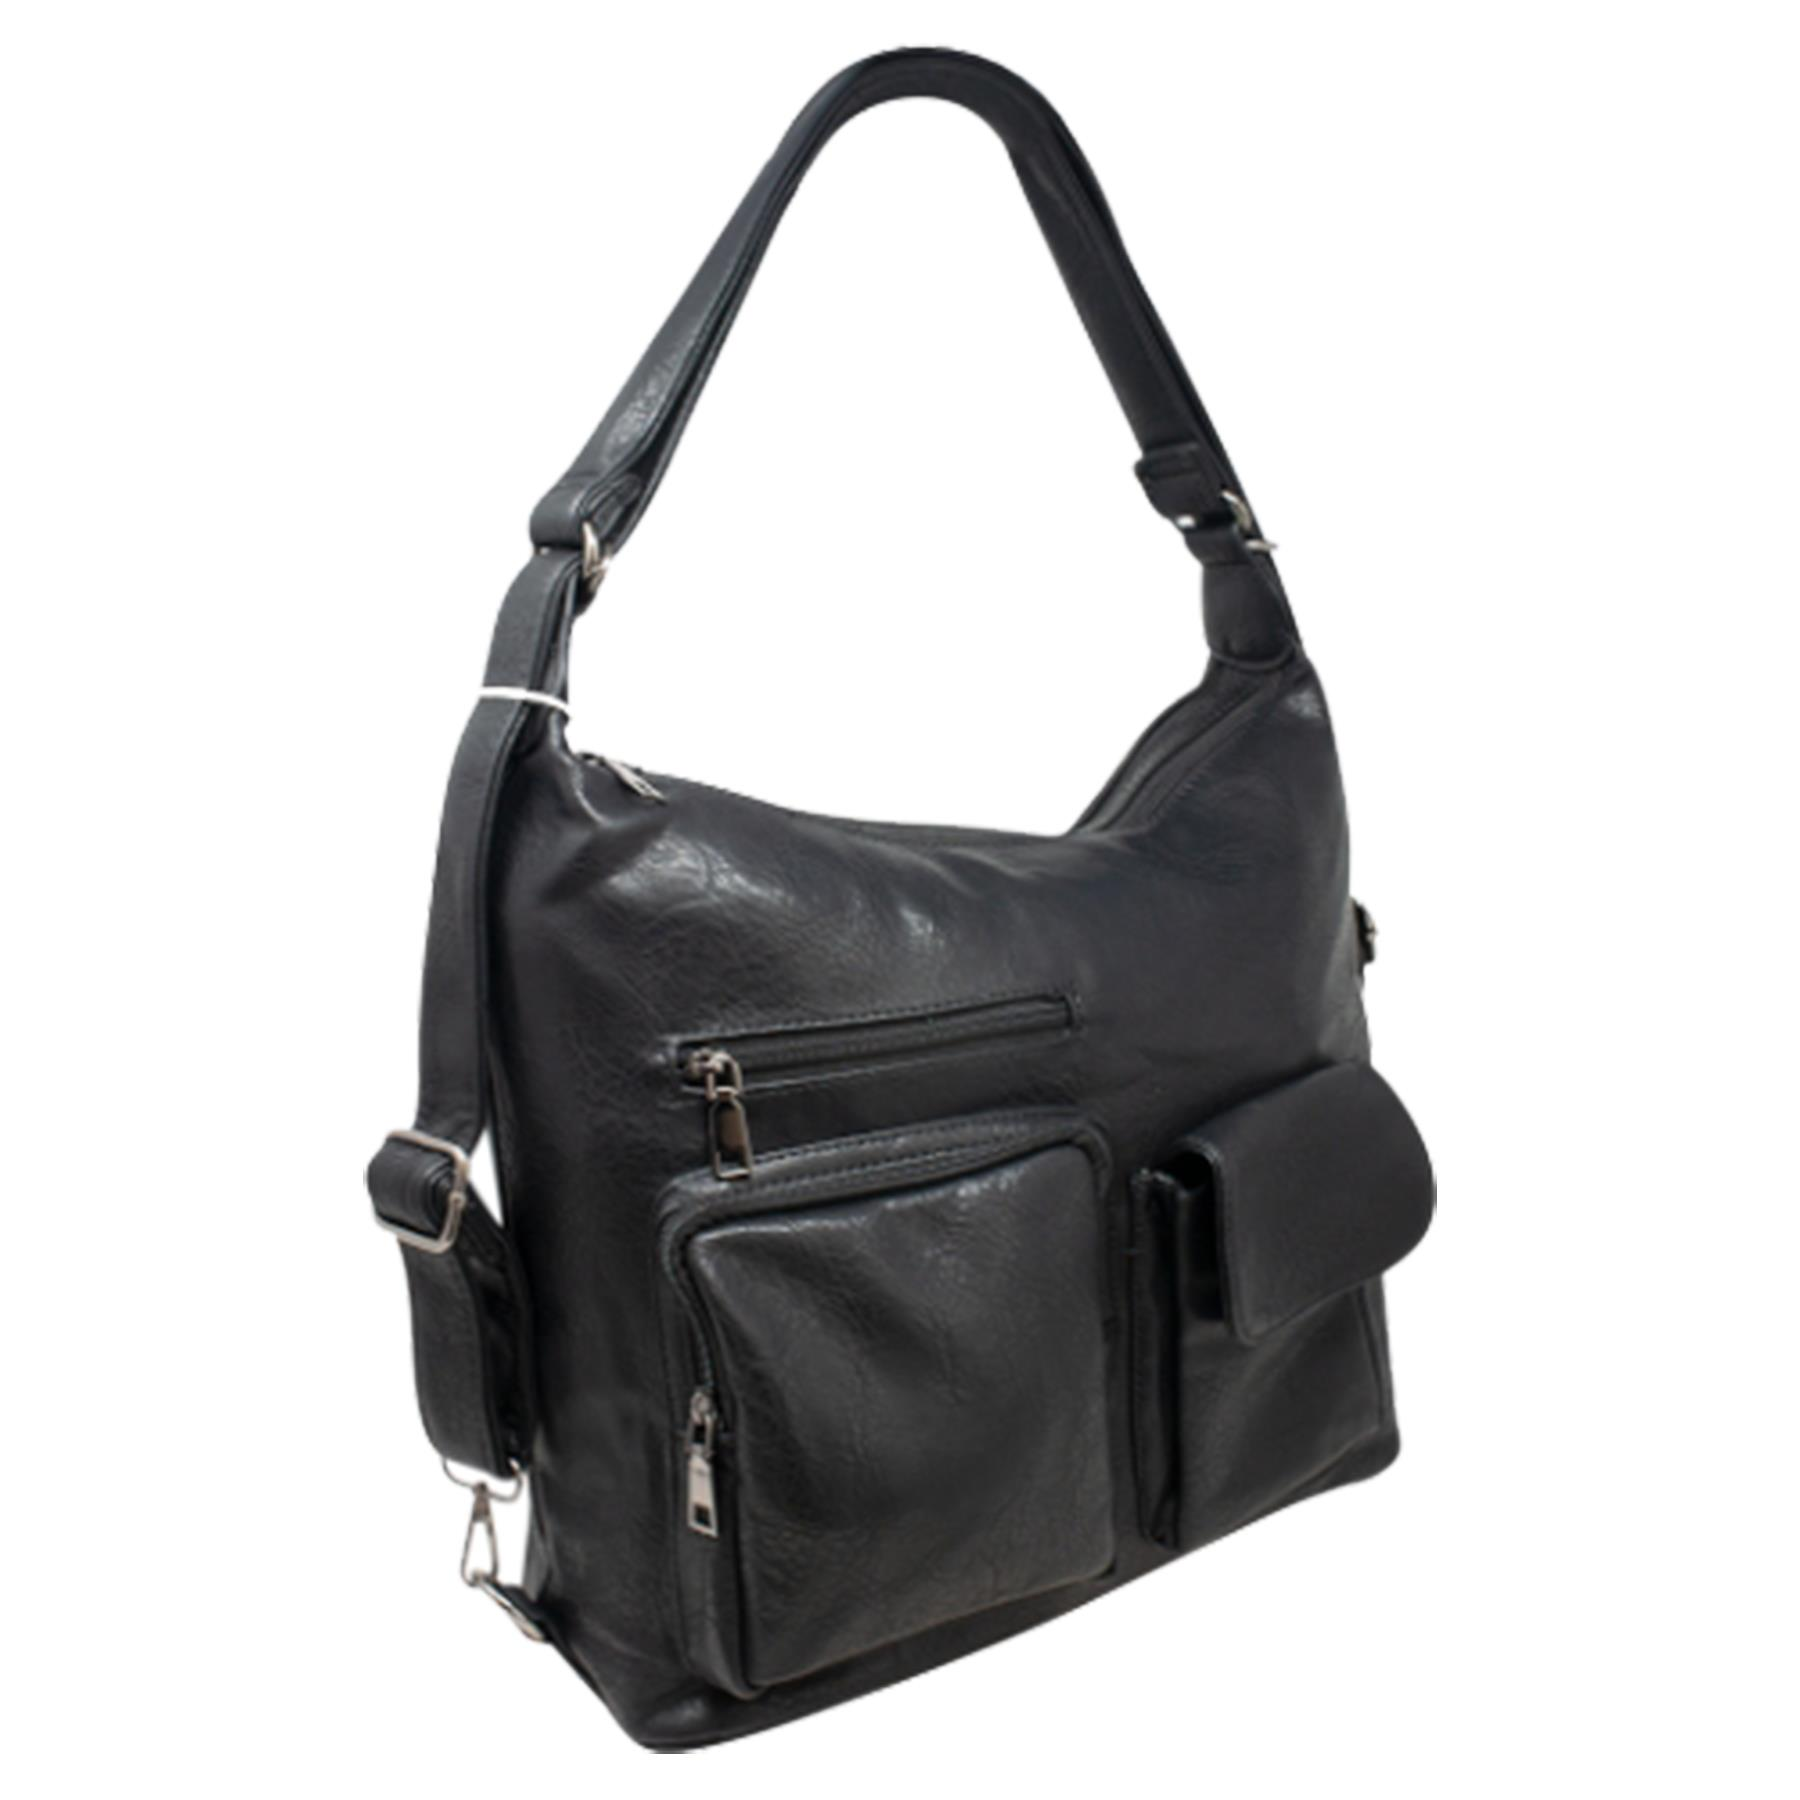 New-Women-s-Men-s-Faux-Leather-Multi-Purpose-Crossbody-Messenger-Bag thumbnail 3